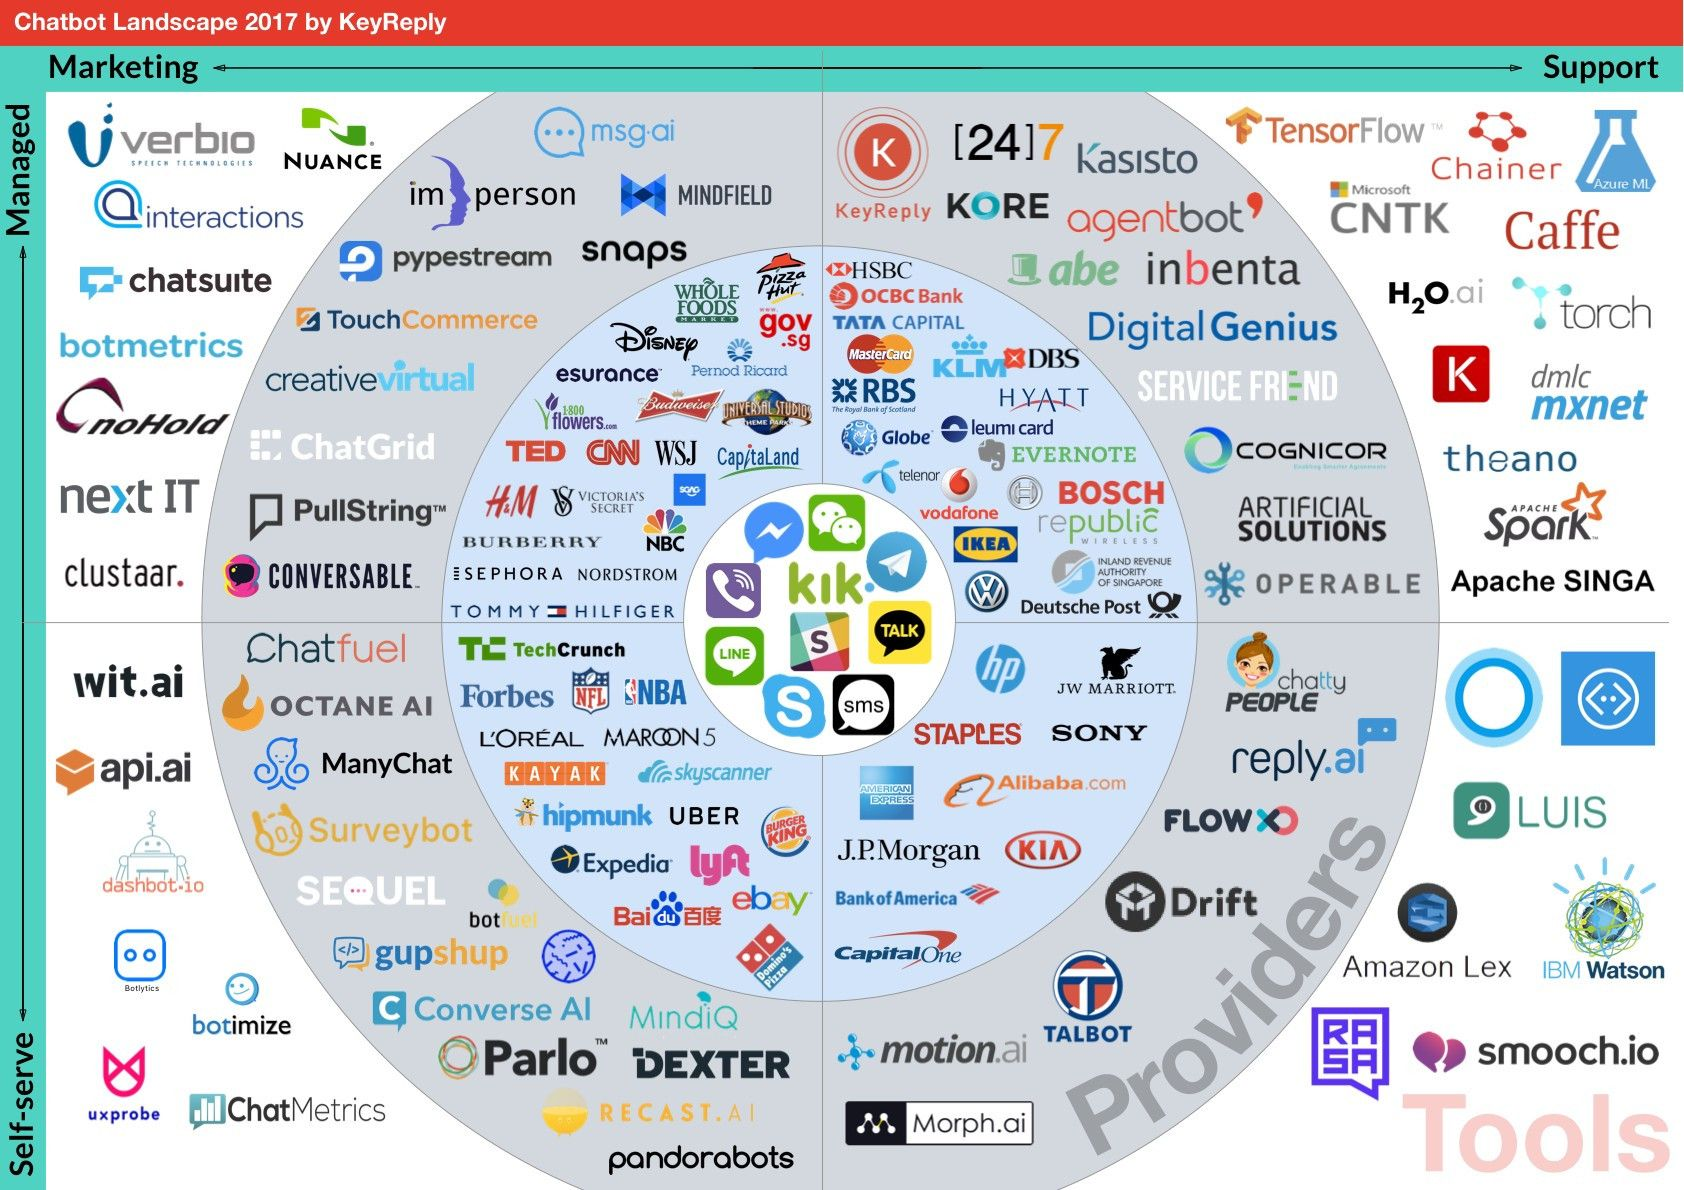 155 Chatbots In This Brand New Landscape Where Does Your Bot Fit Chatbot Digital Advertising Marketing Support